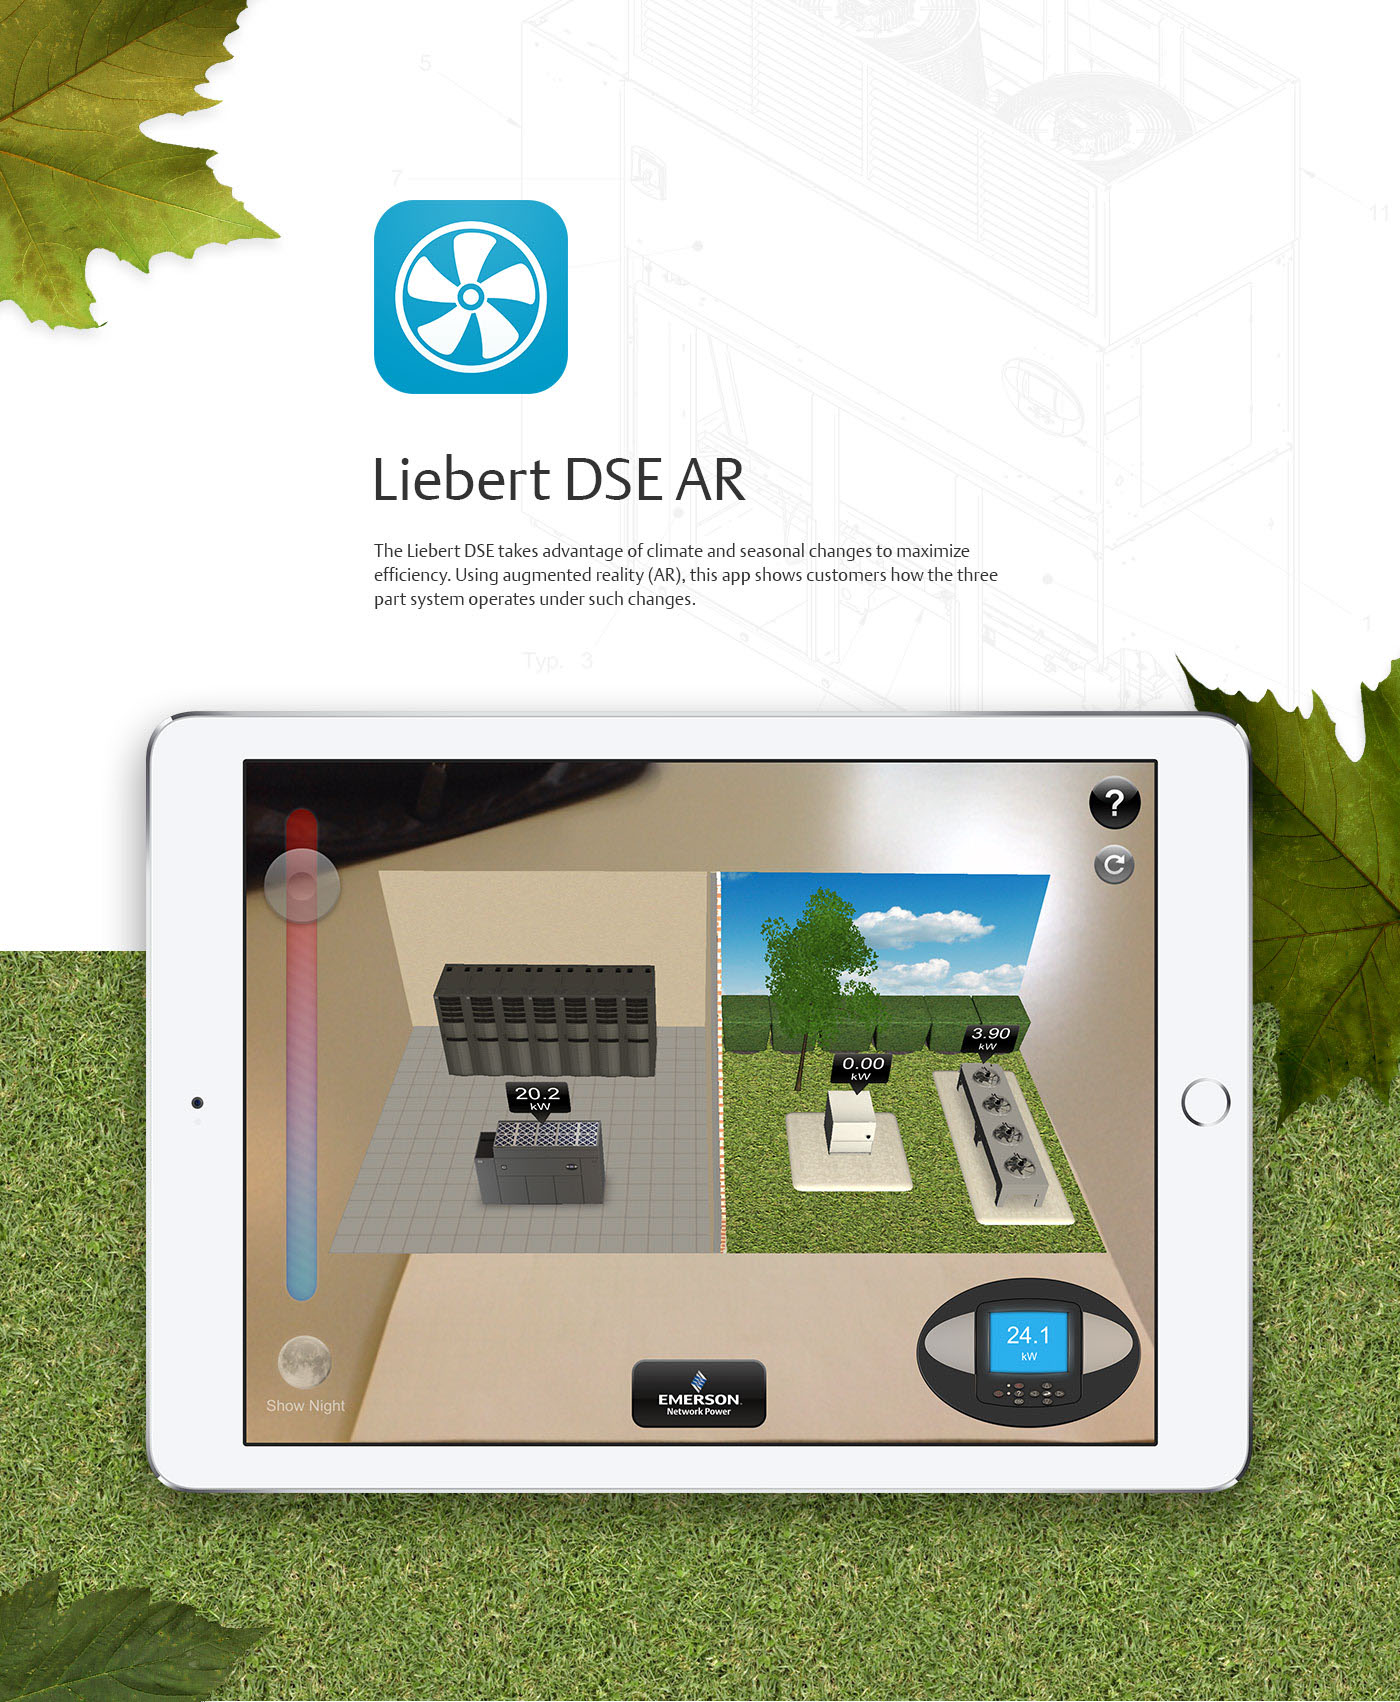 liebert emerson DSE augmented reality AR green seasons climate weather cooling data center Trade Show